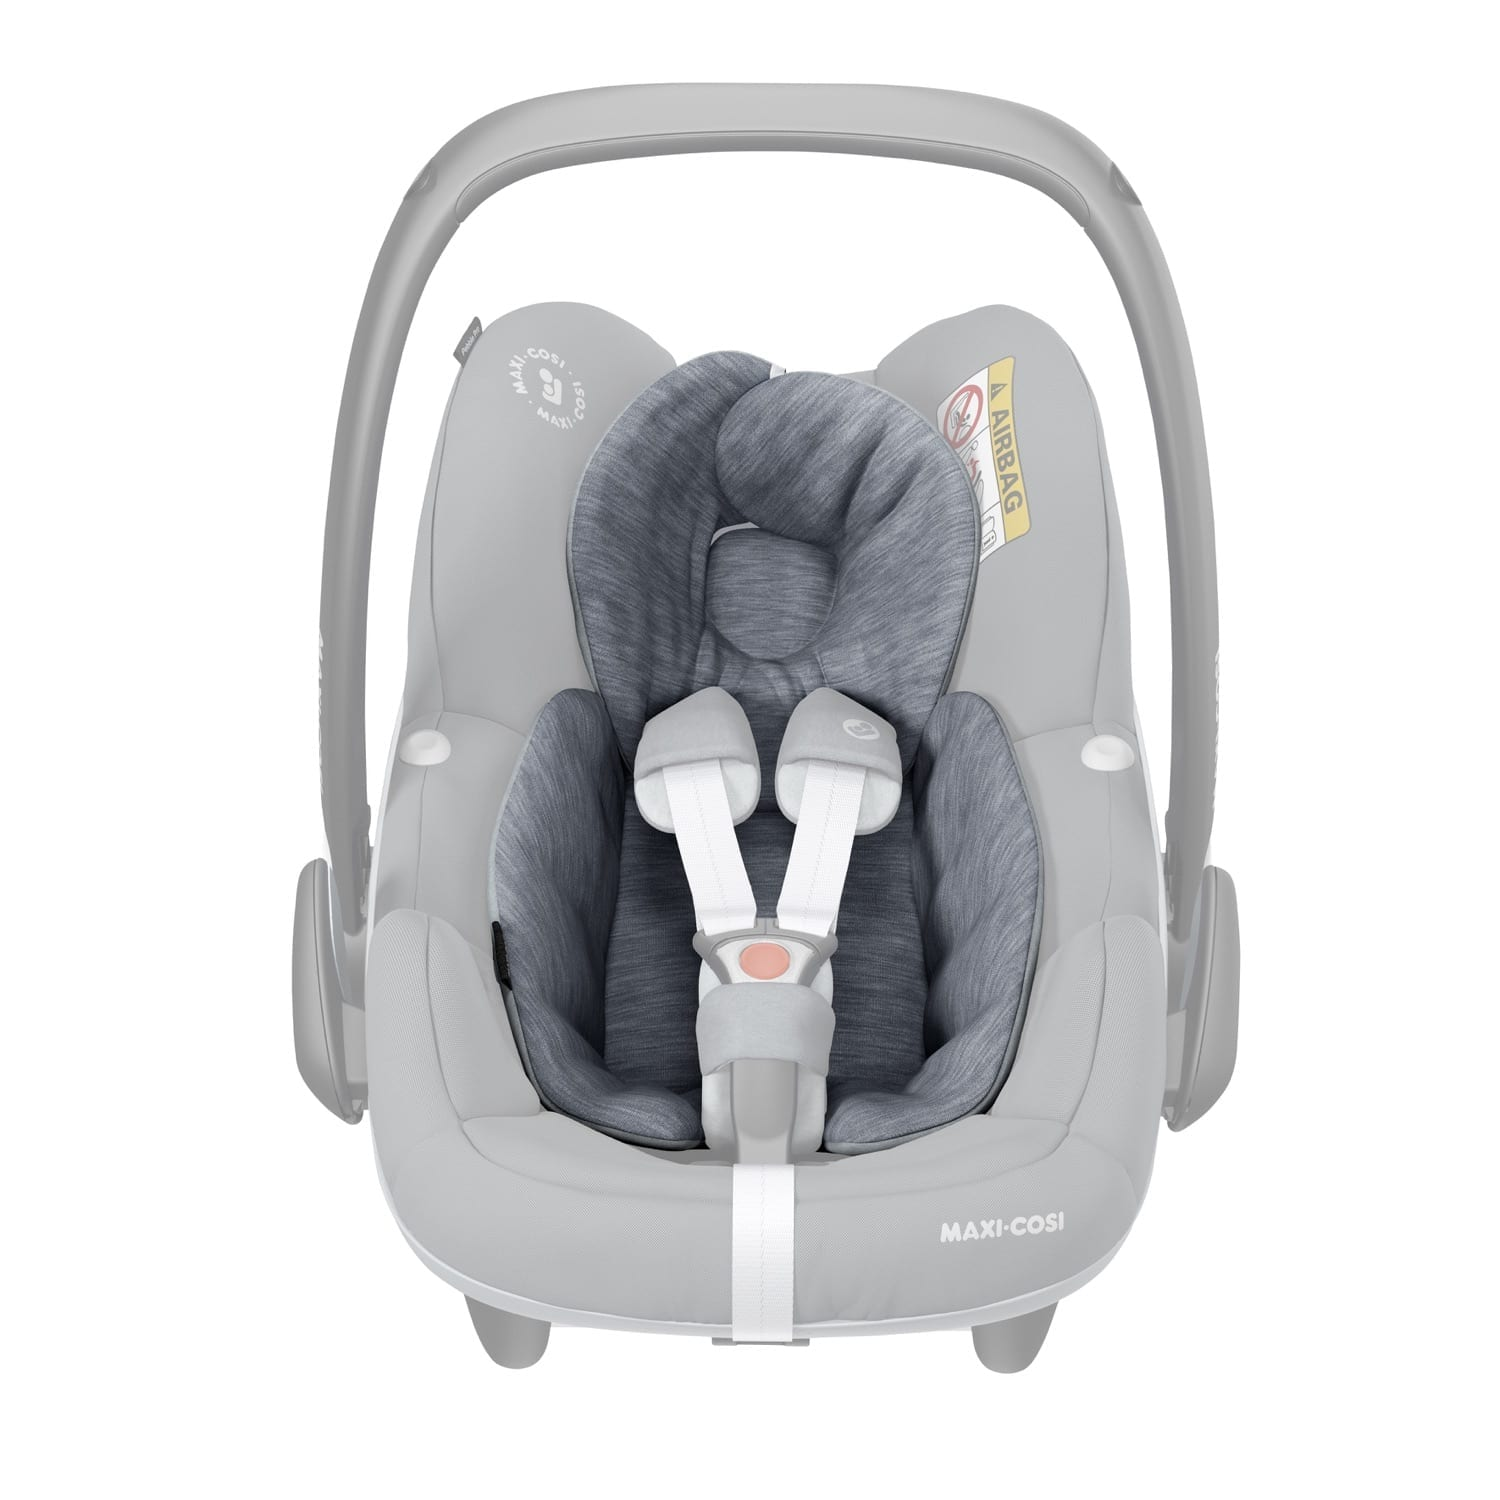 Maxi Cosi Pebble Pro i-Size Essential Grey product image